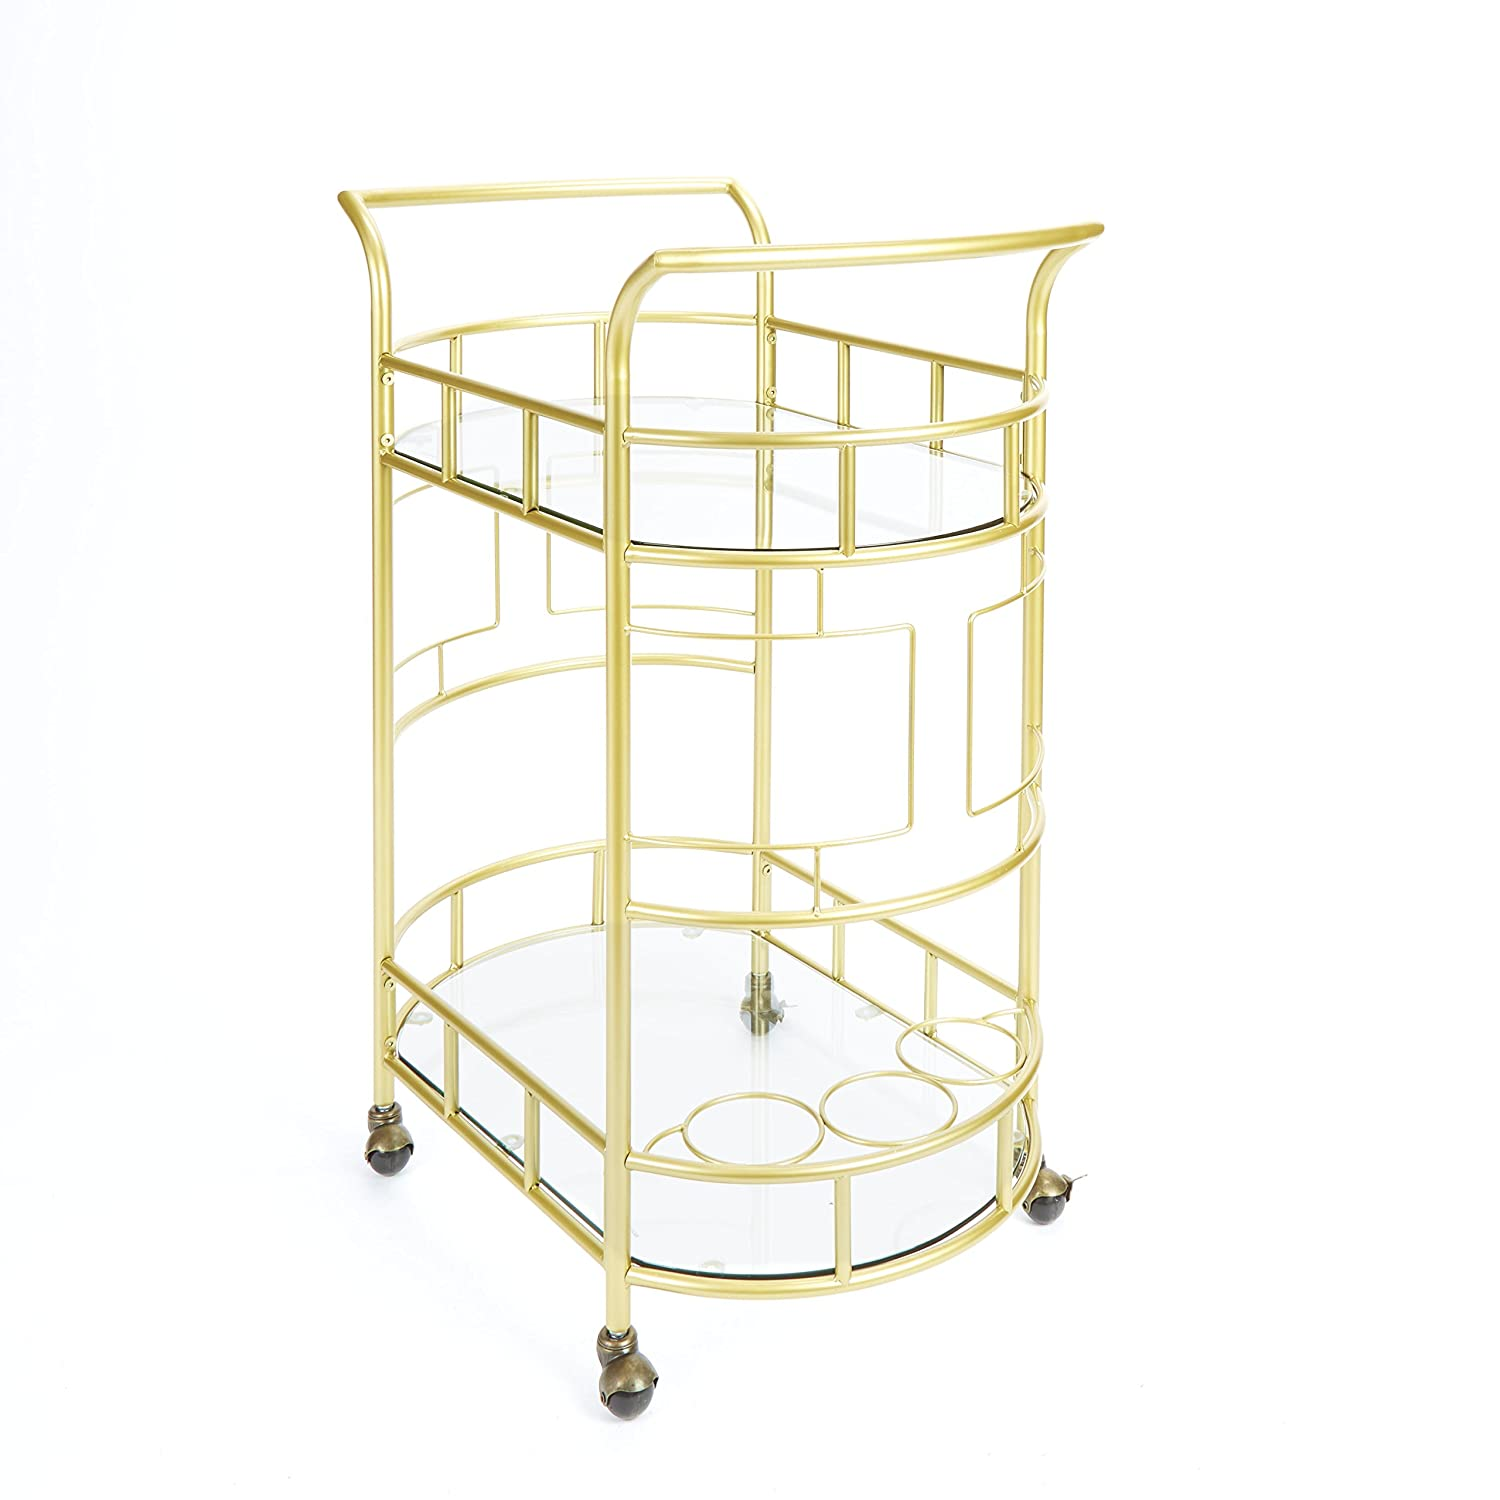 "Silverwood FS1133B-COM Sinclair 2-Tier Serving Cart 2, 17"" L x 26.5"" W x 34.5"" H, Gold"